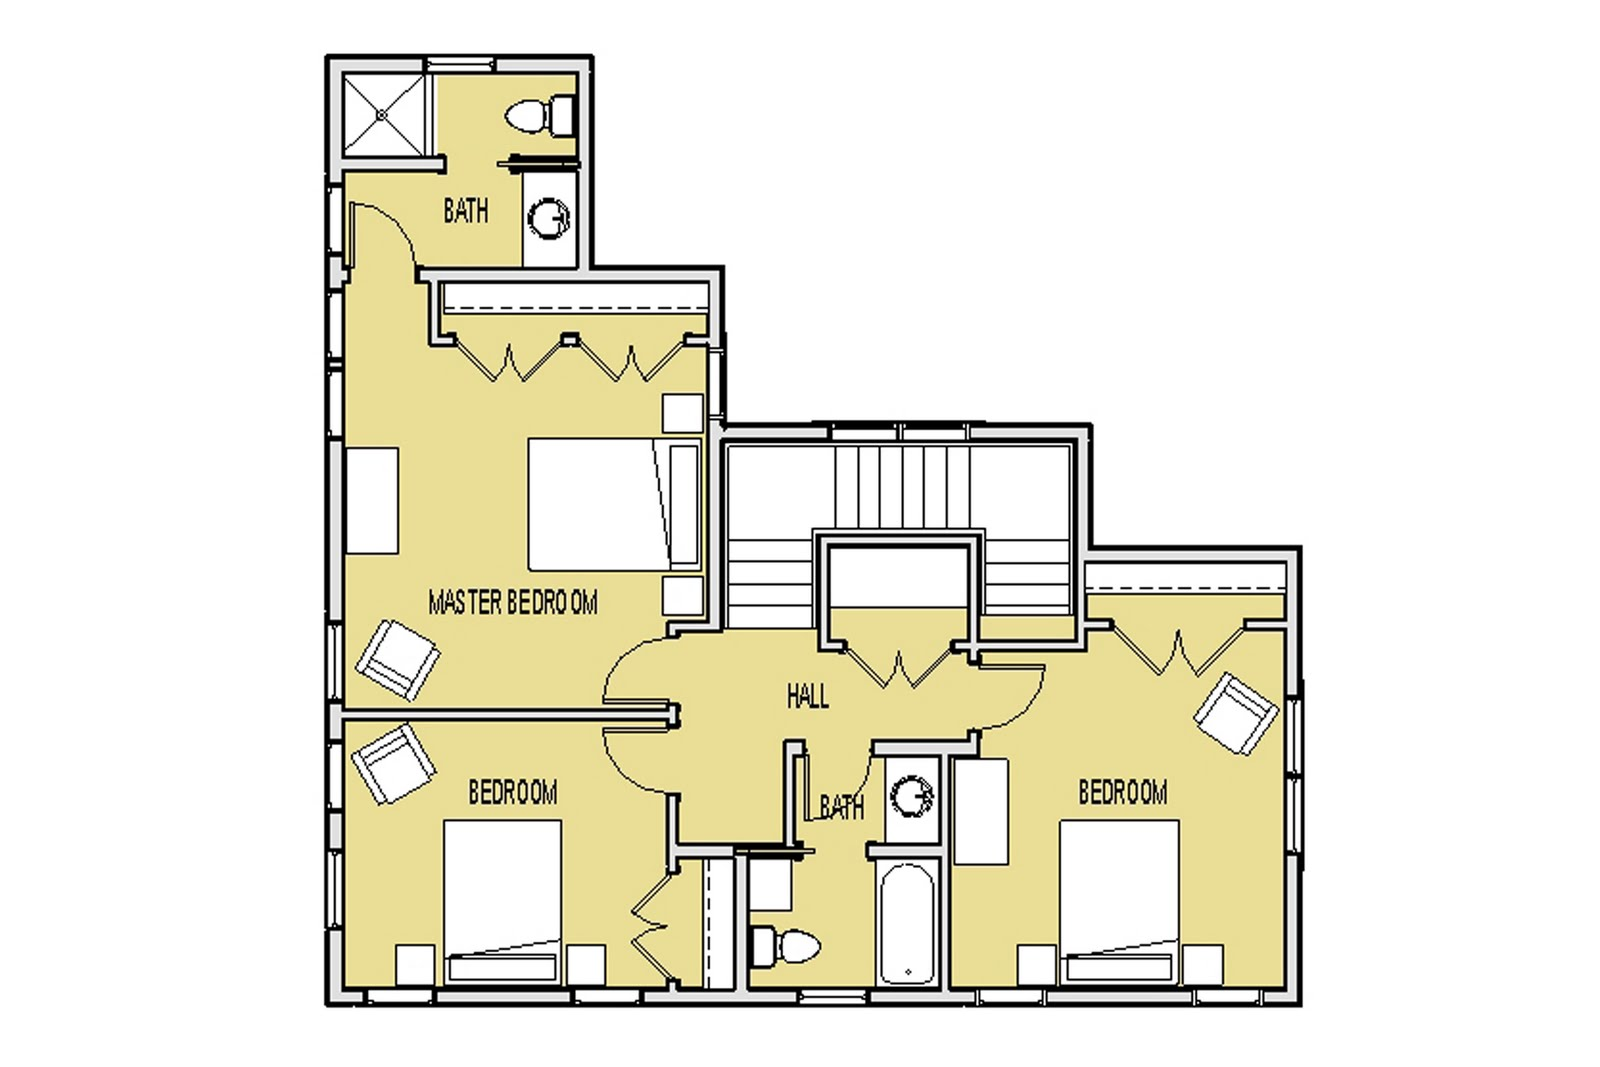 Simply Elegant Home Designs Blog: New Unique Small House Plan!